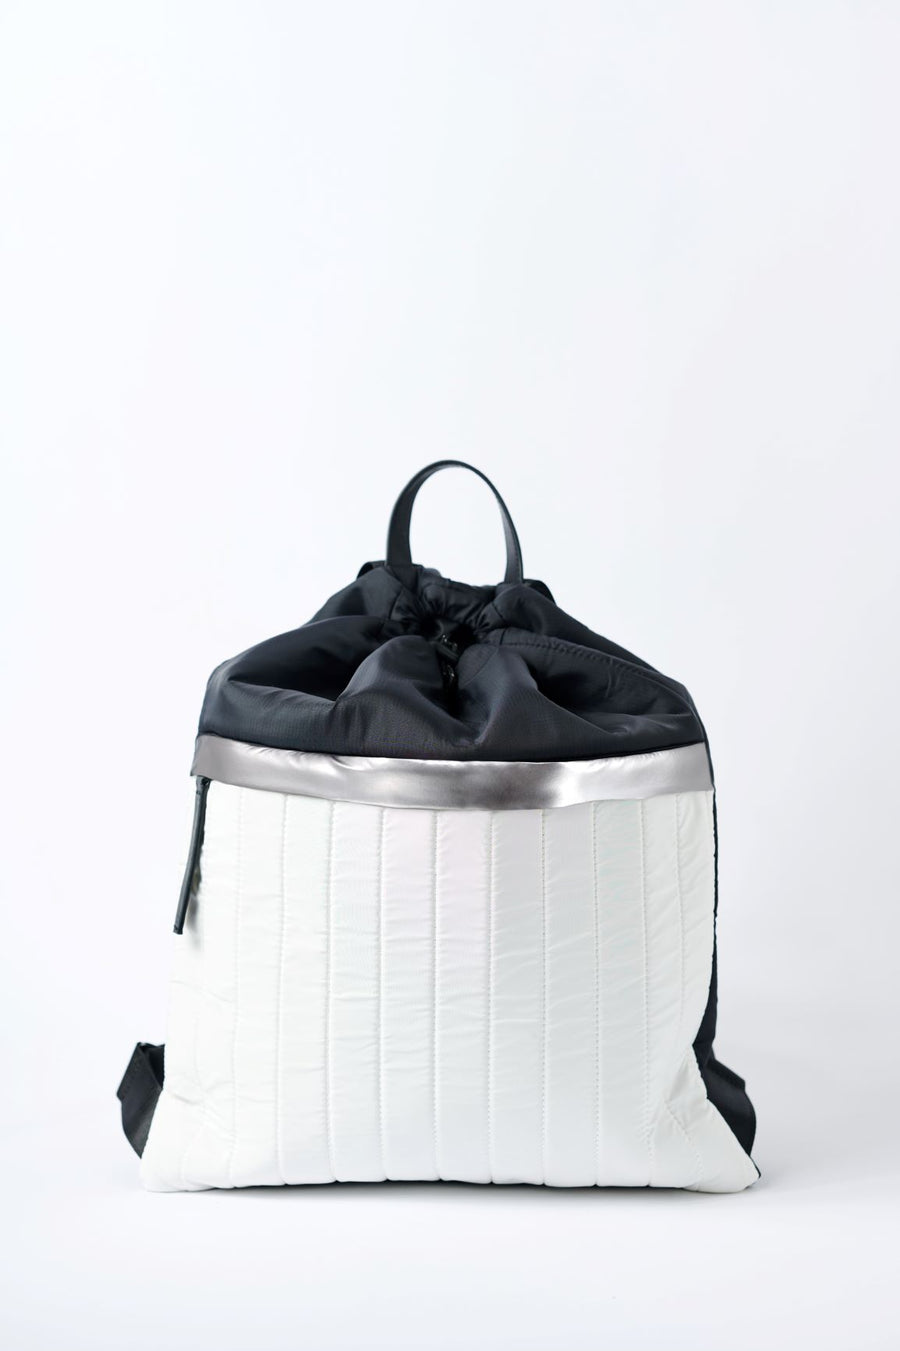 Black & white nylon cinch top backpack with signature leather and shiny silver details.